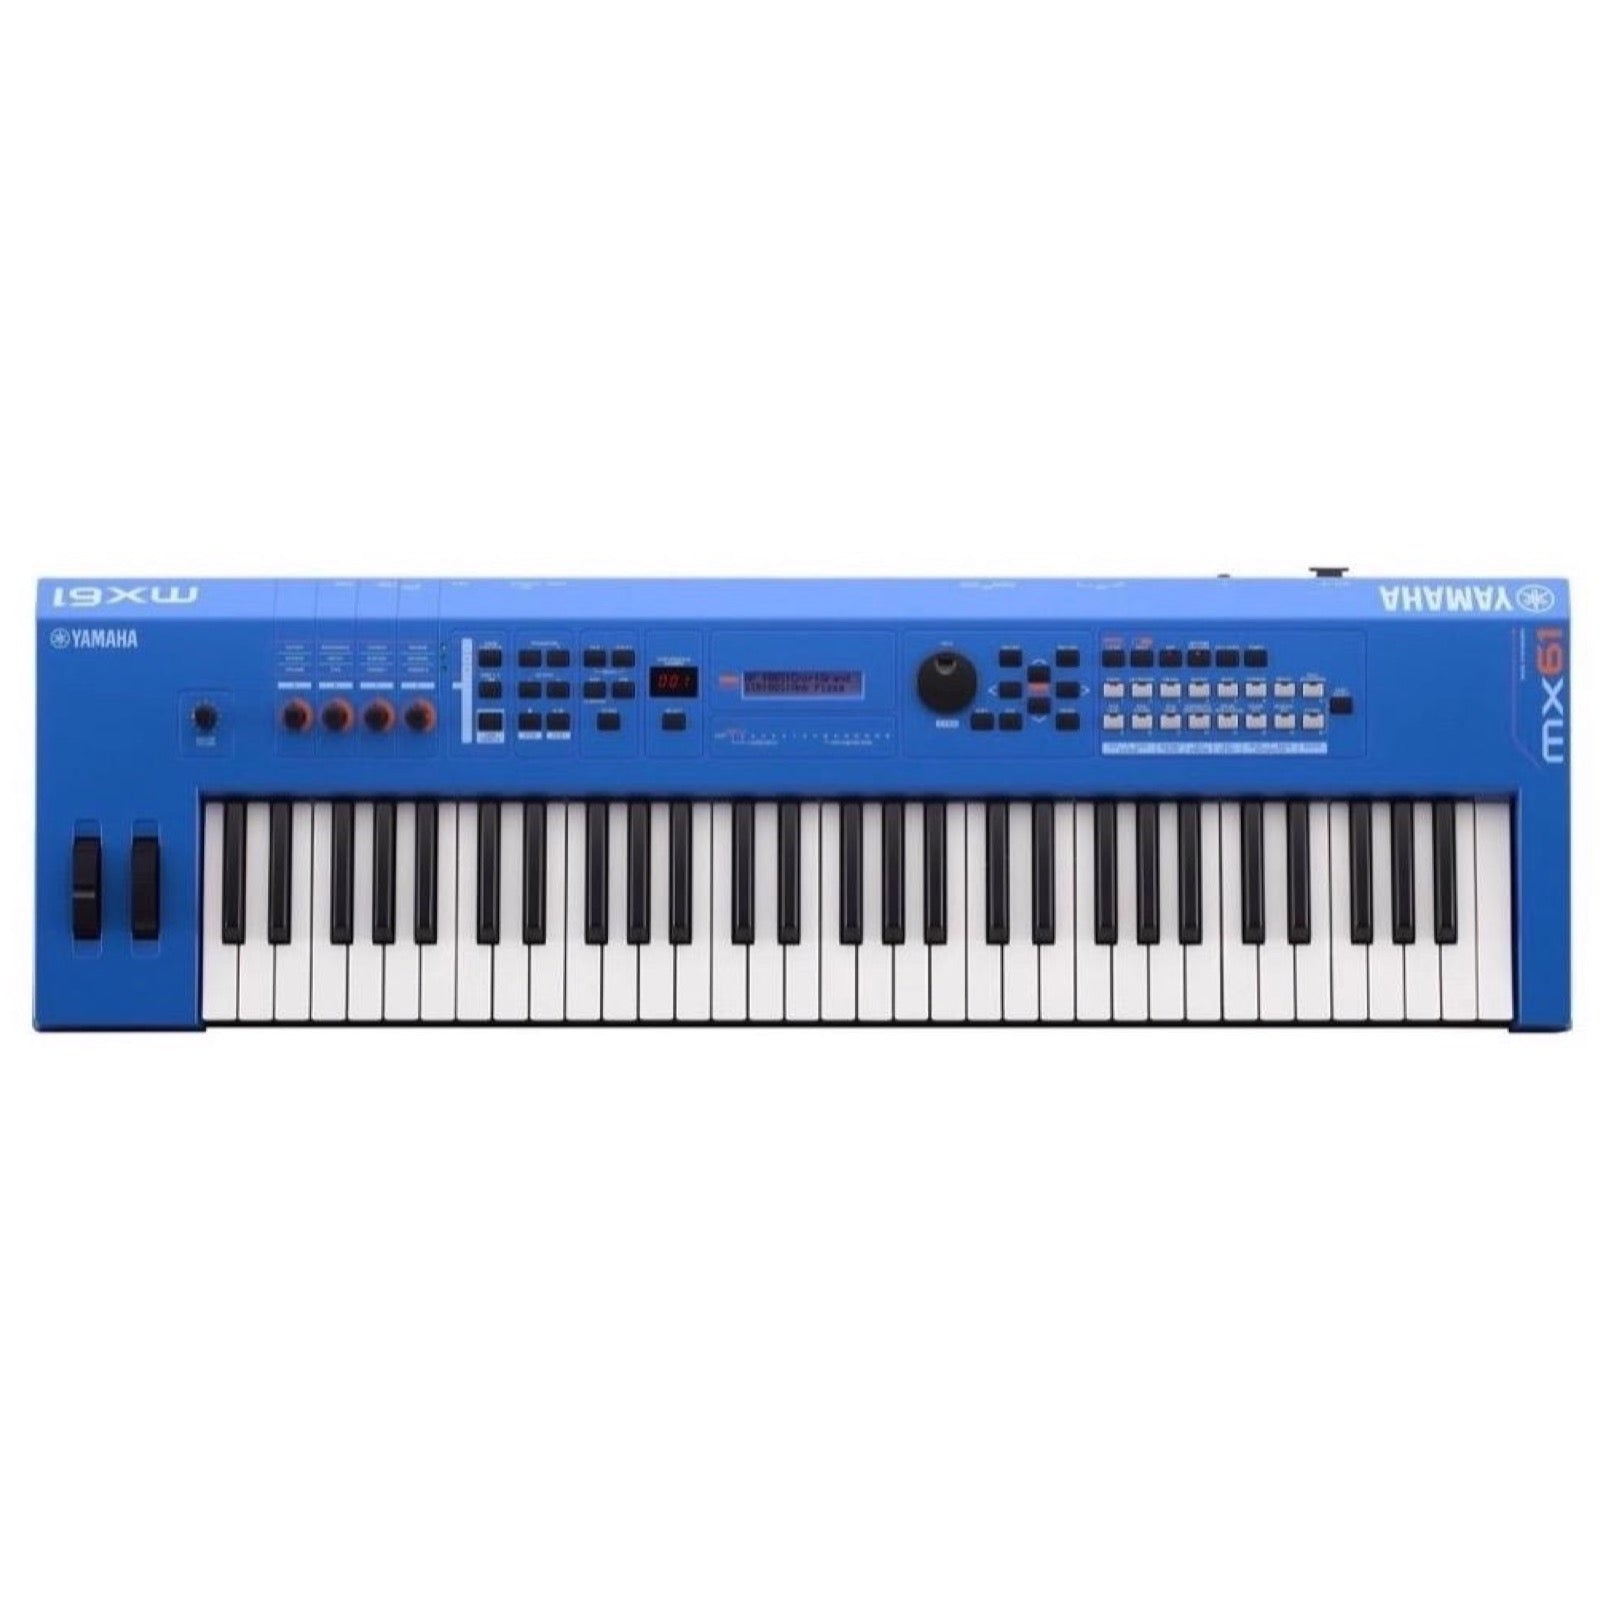 Yamaha MX61 v2 Keyboard Synthesizer, 61-Key, Blue